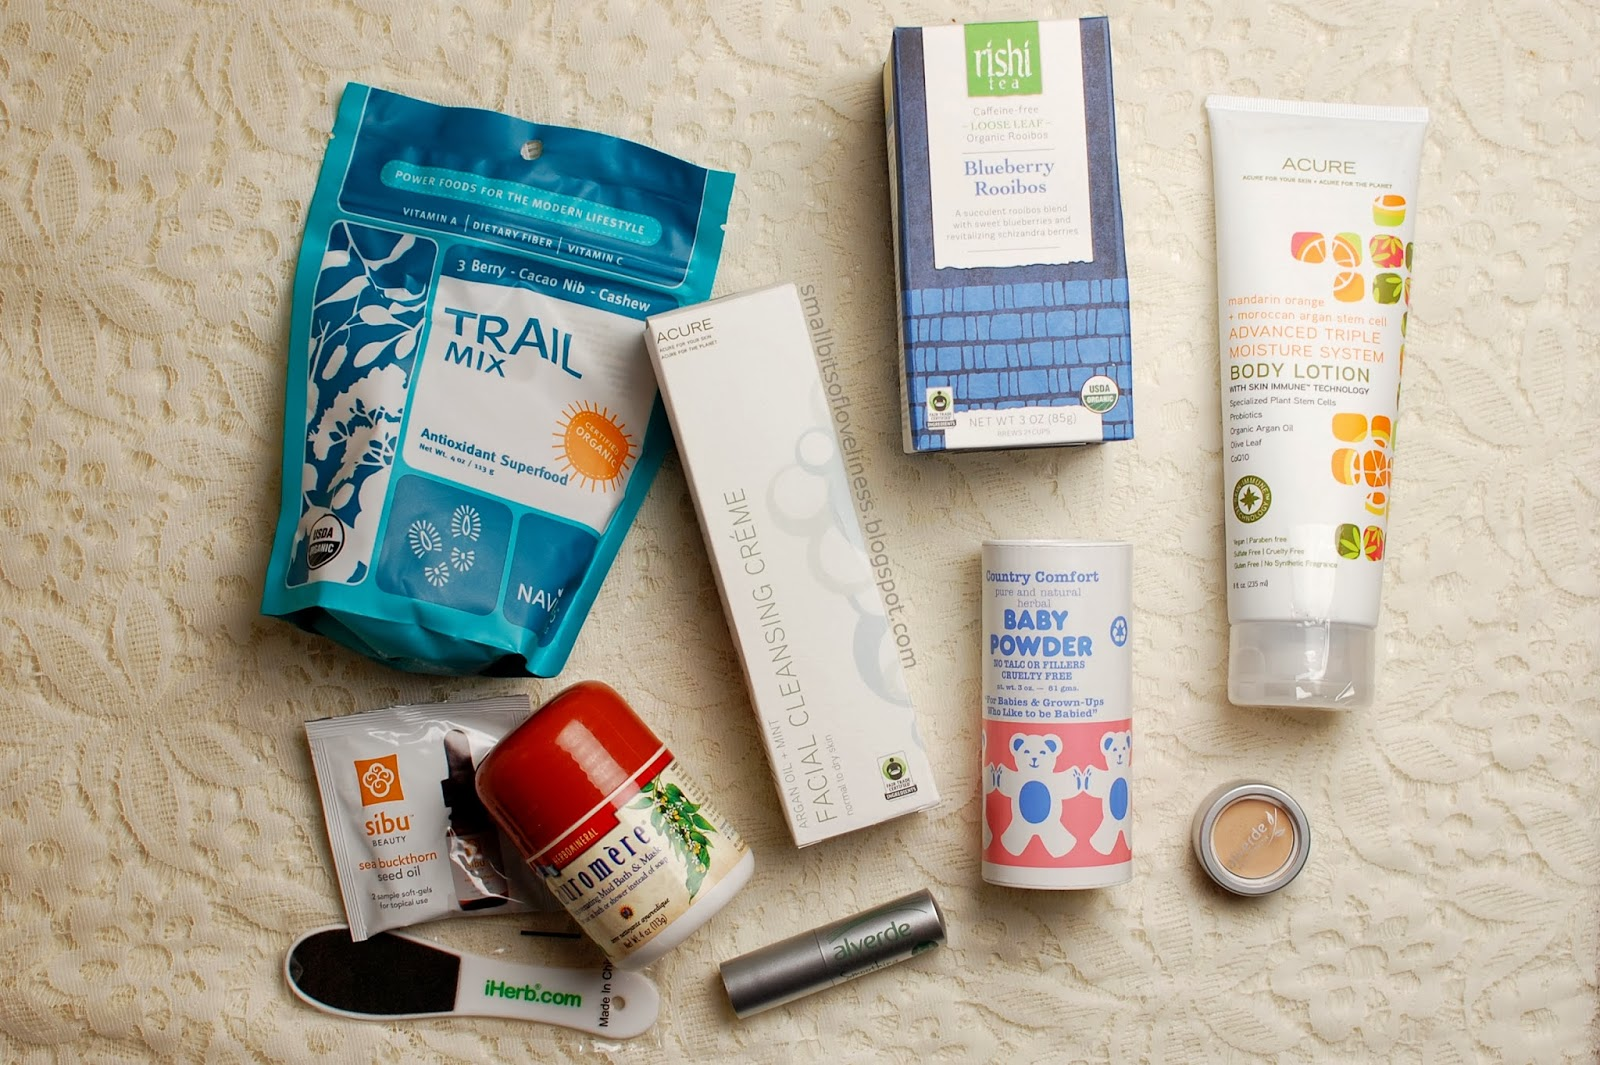 iHerb and Alverde haul